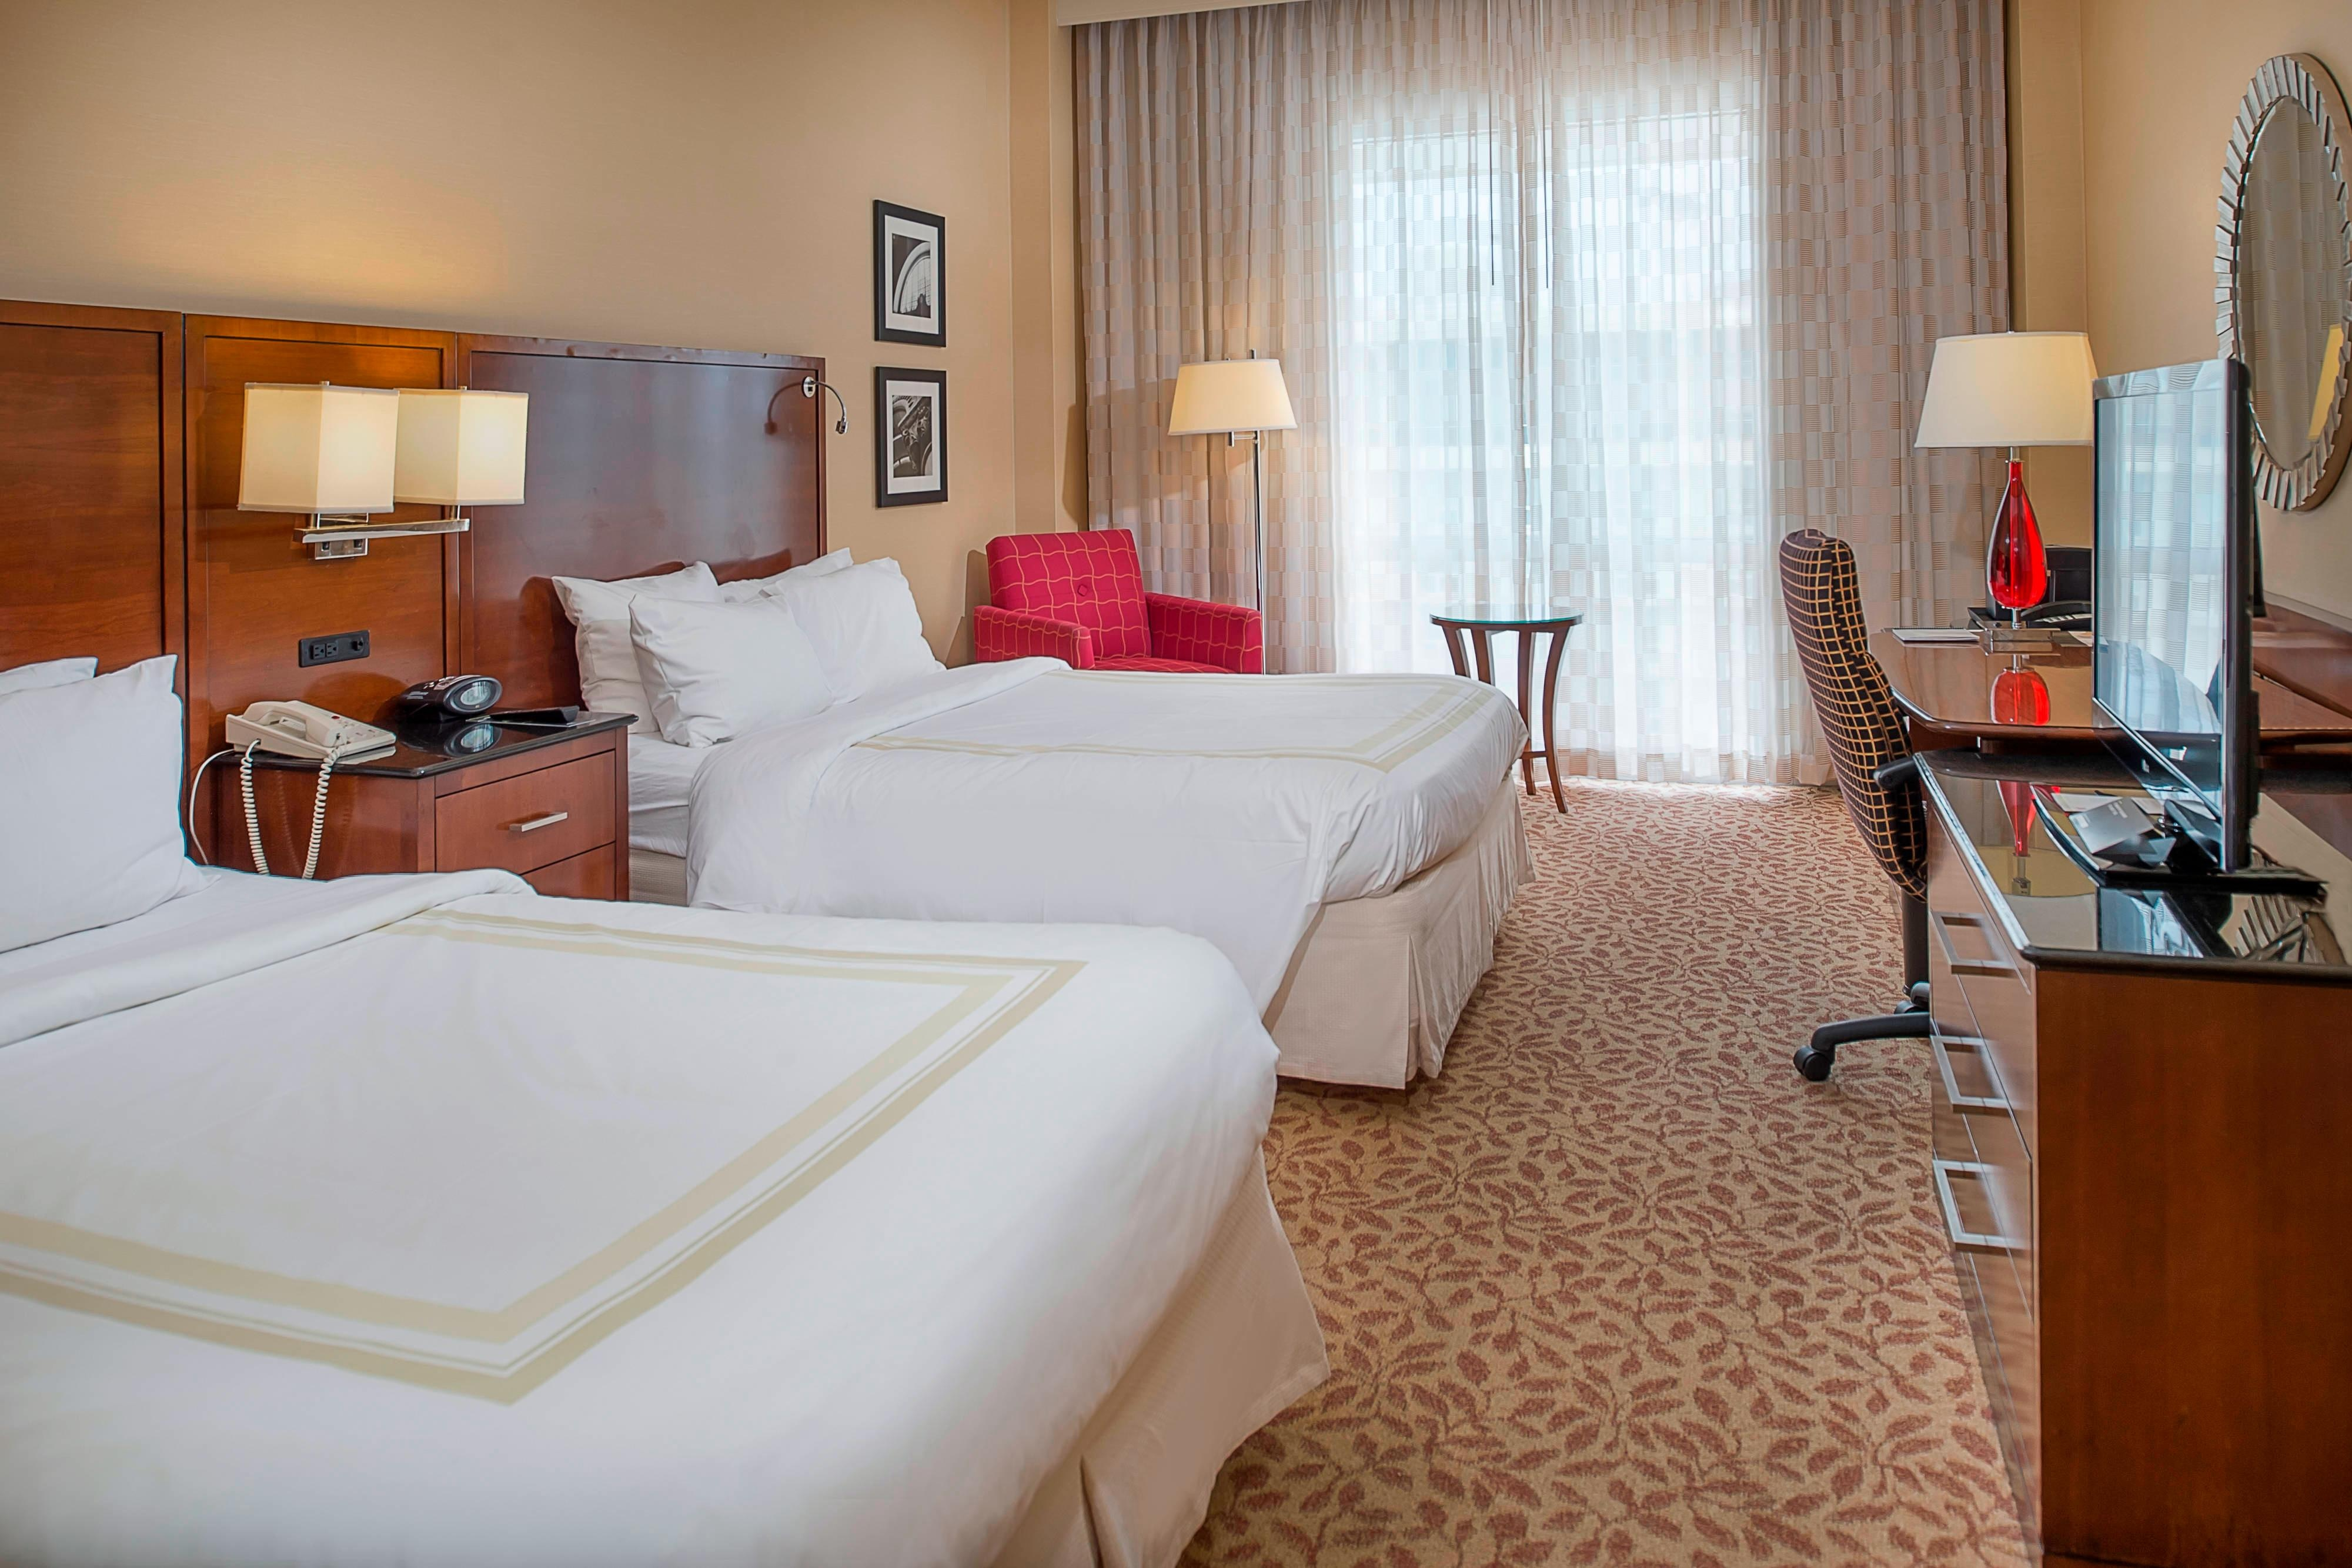 Marriott S St Louis Mo Lodging Features Modern St Louis Hotel Rooms Suites